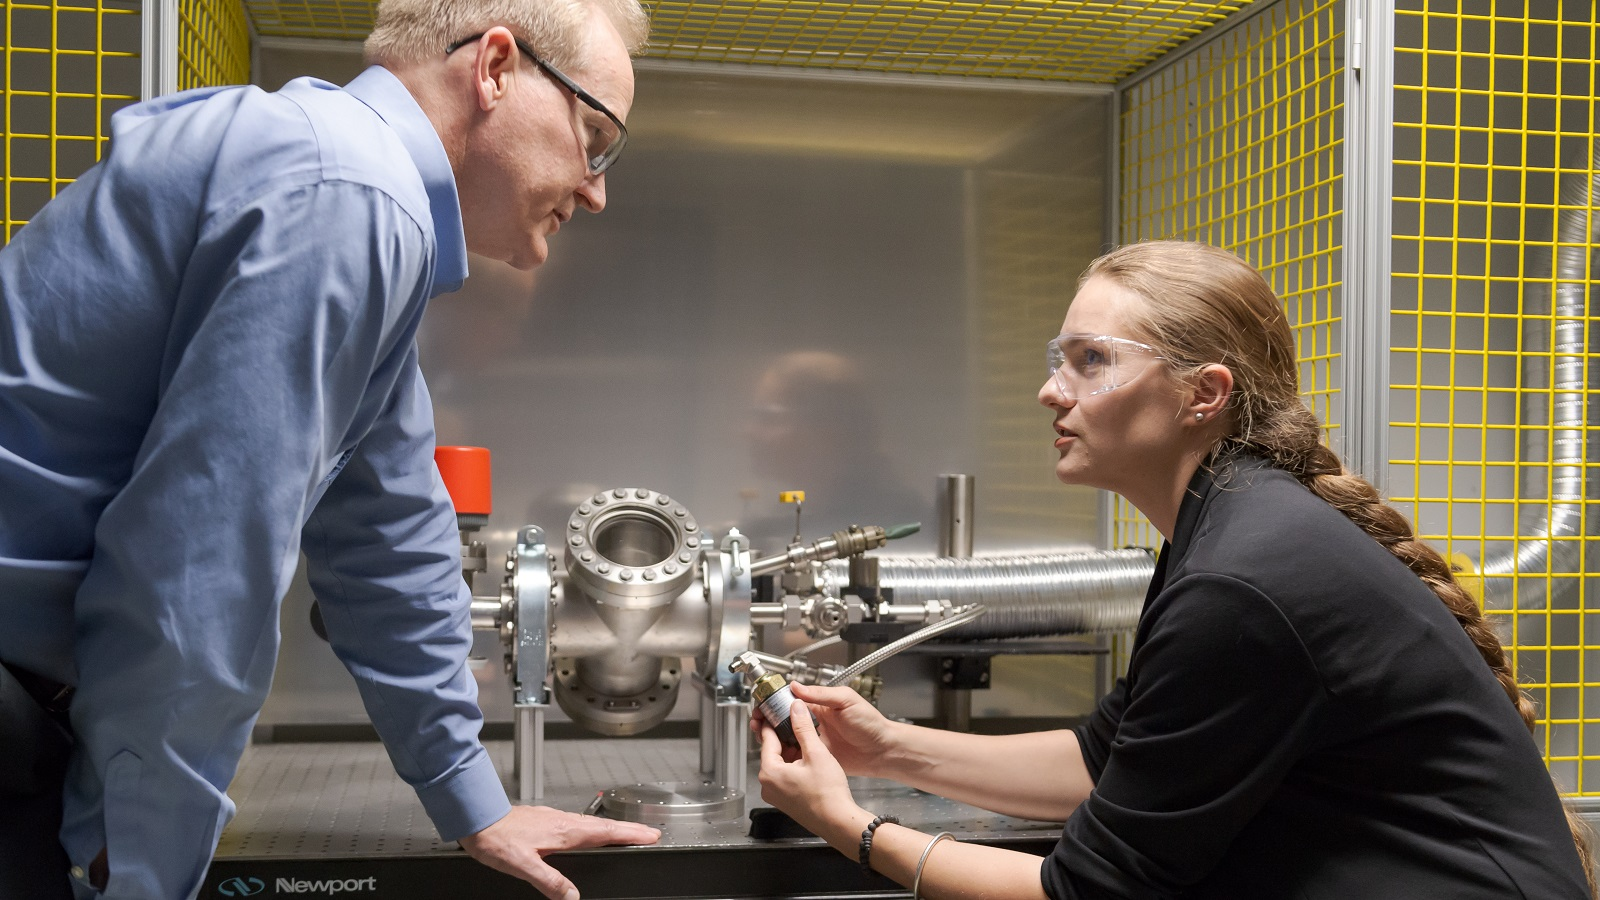 Cohort 2 innovator Veronika Stelmakh, CEO and co-founder of Mesodyne, works with Doug Longman, manager of Engine Combustion Research at Argonne. (Image by Argonne National Laboratory.)